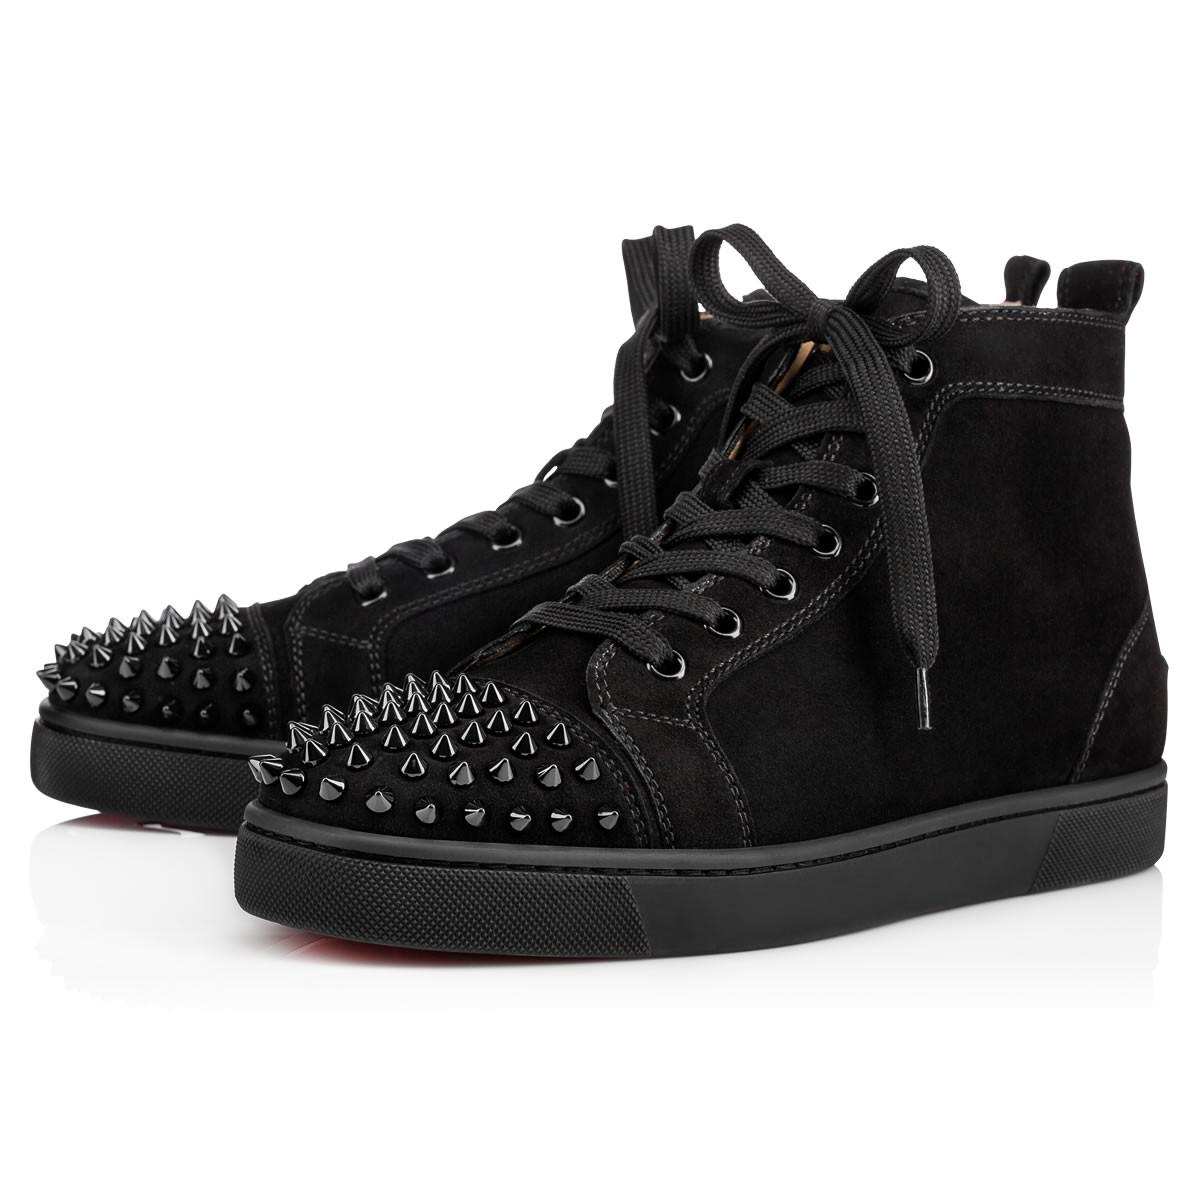 4ff33c3c0f46 Lyst - Christian Louboutin Lou Spikes Flat in Black for Men